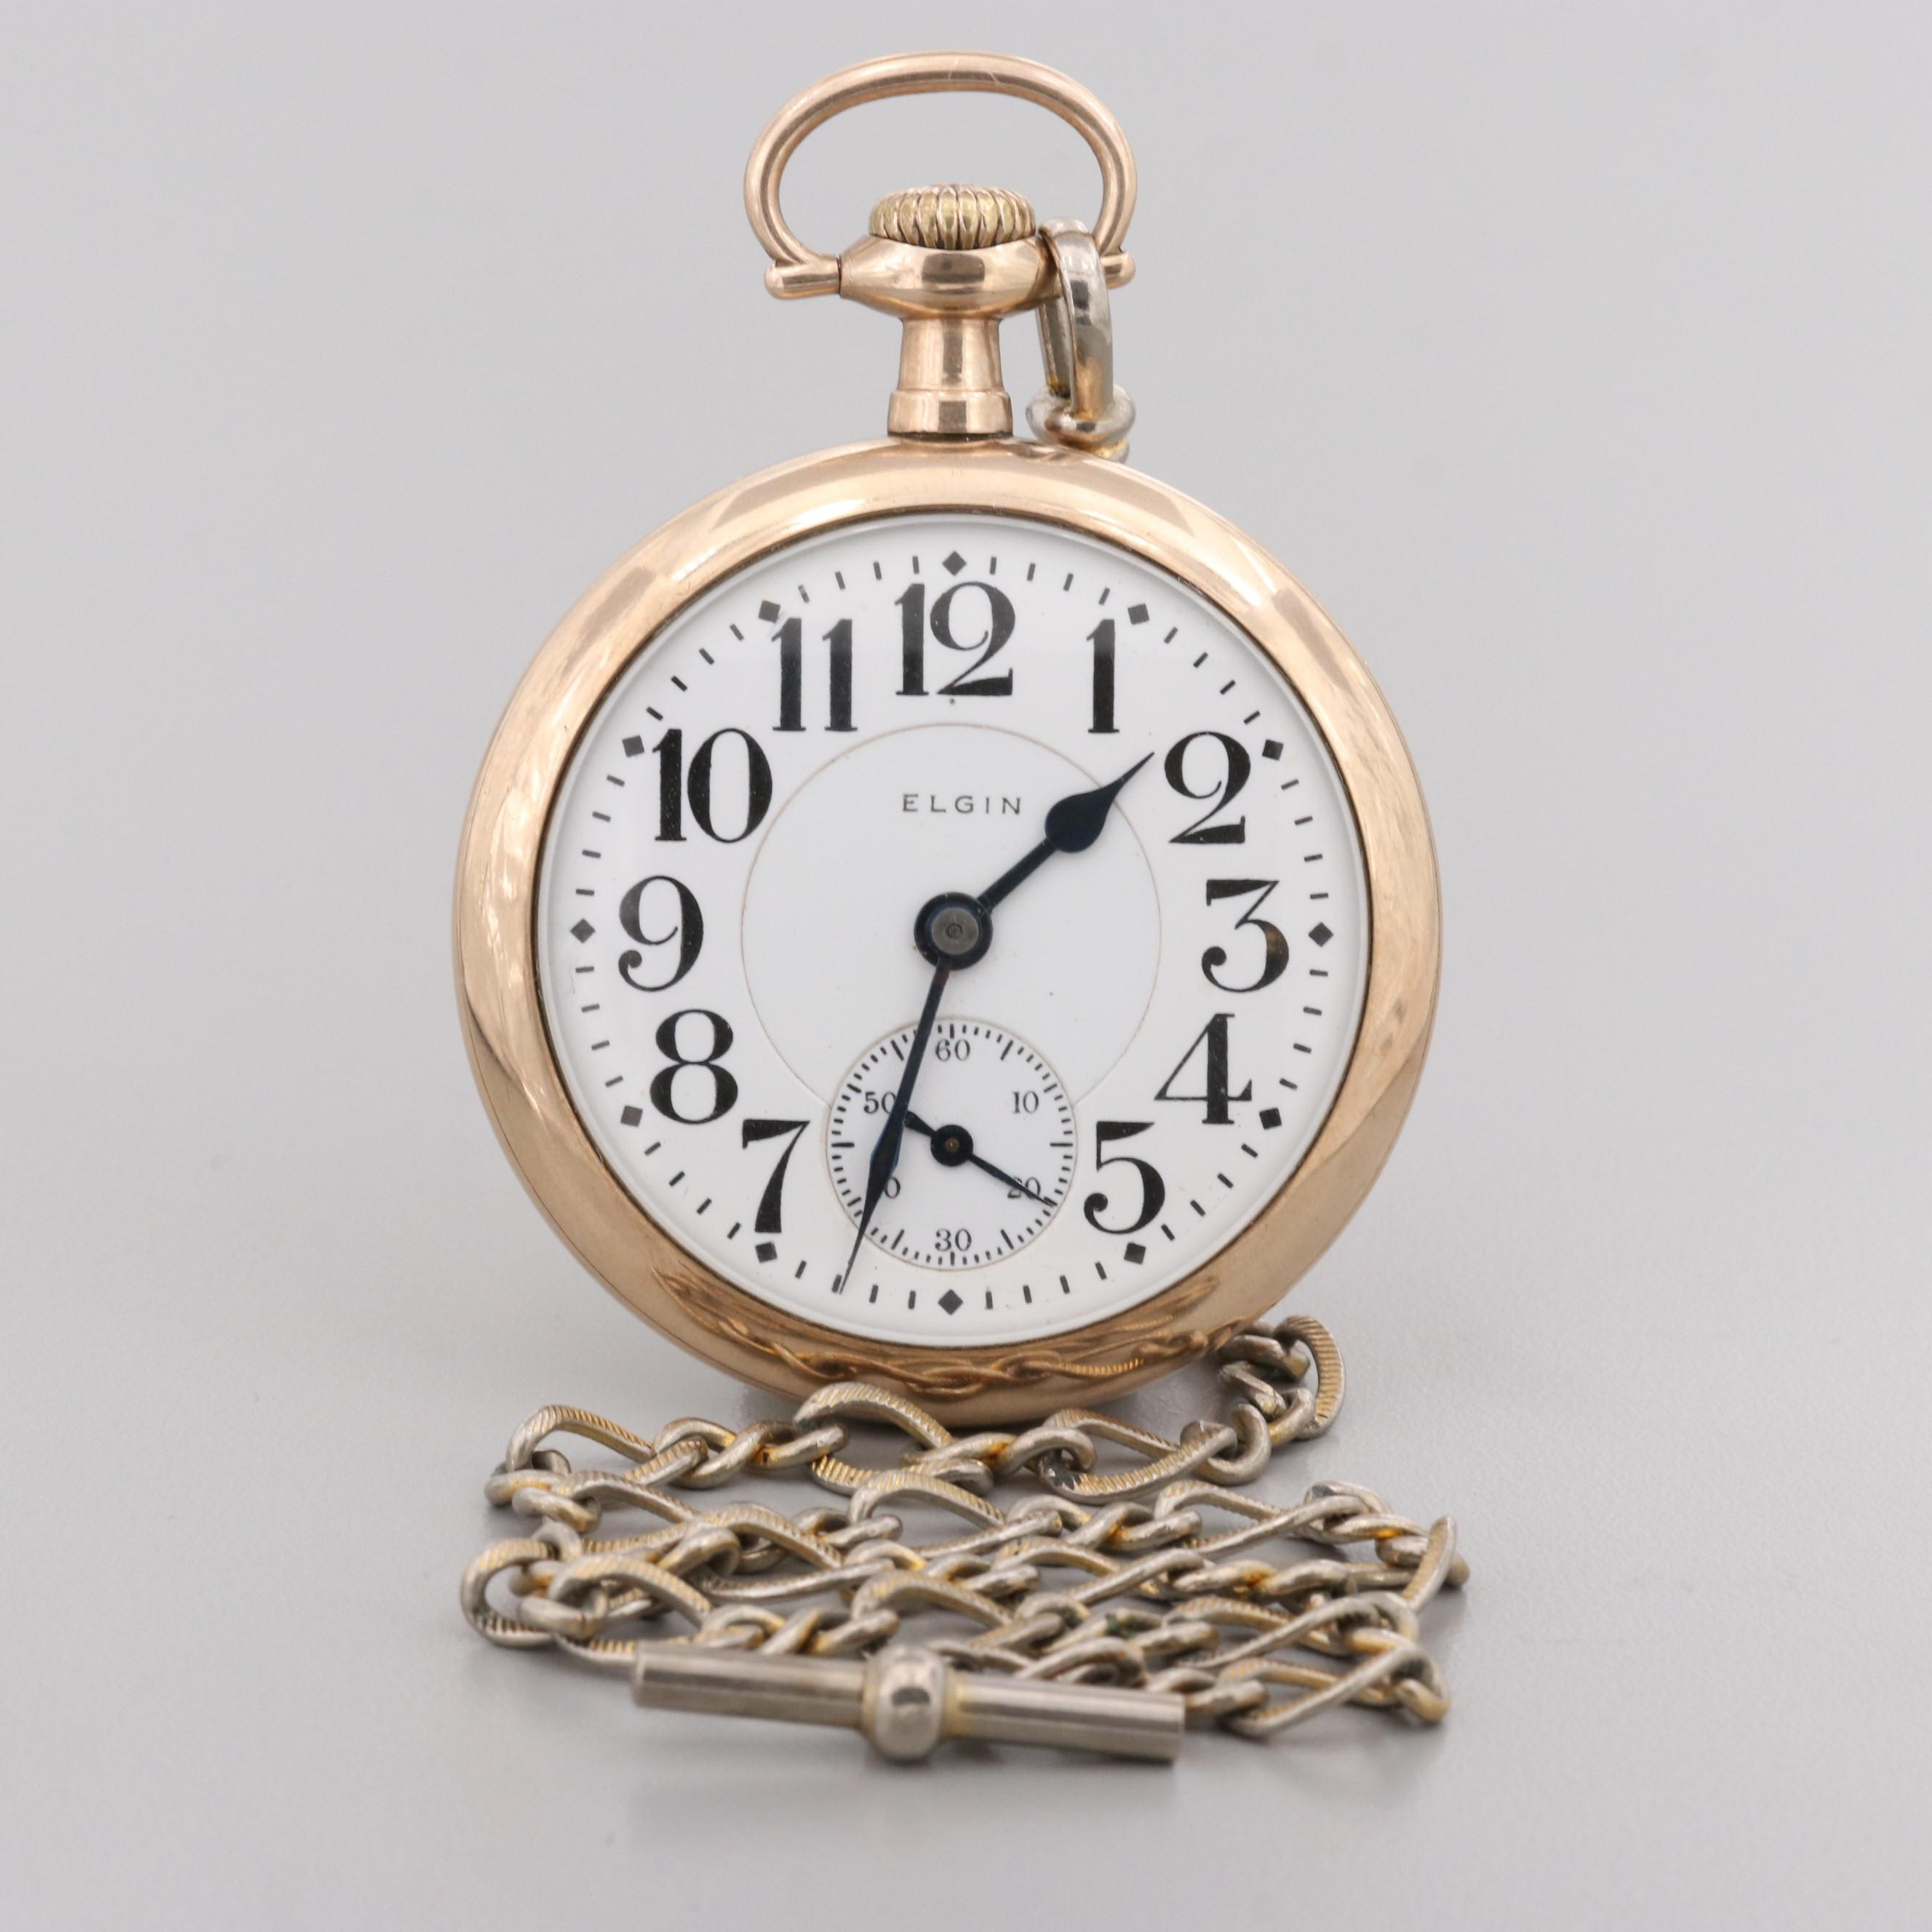 Elgin Railroad Grade Pocket Watch With Fob Chain, 1917